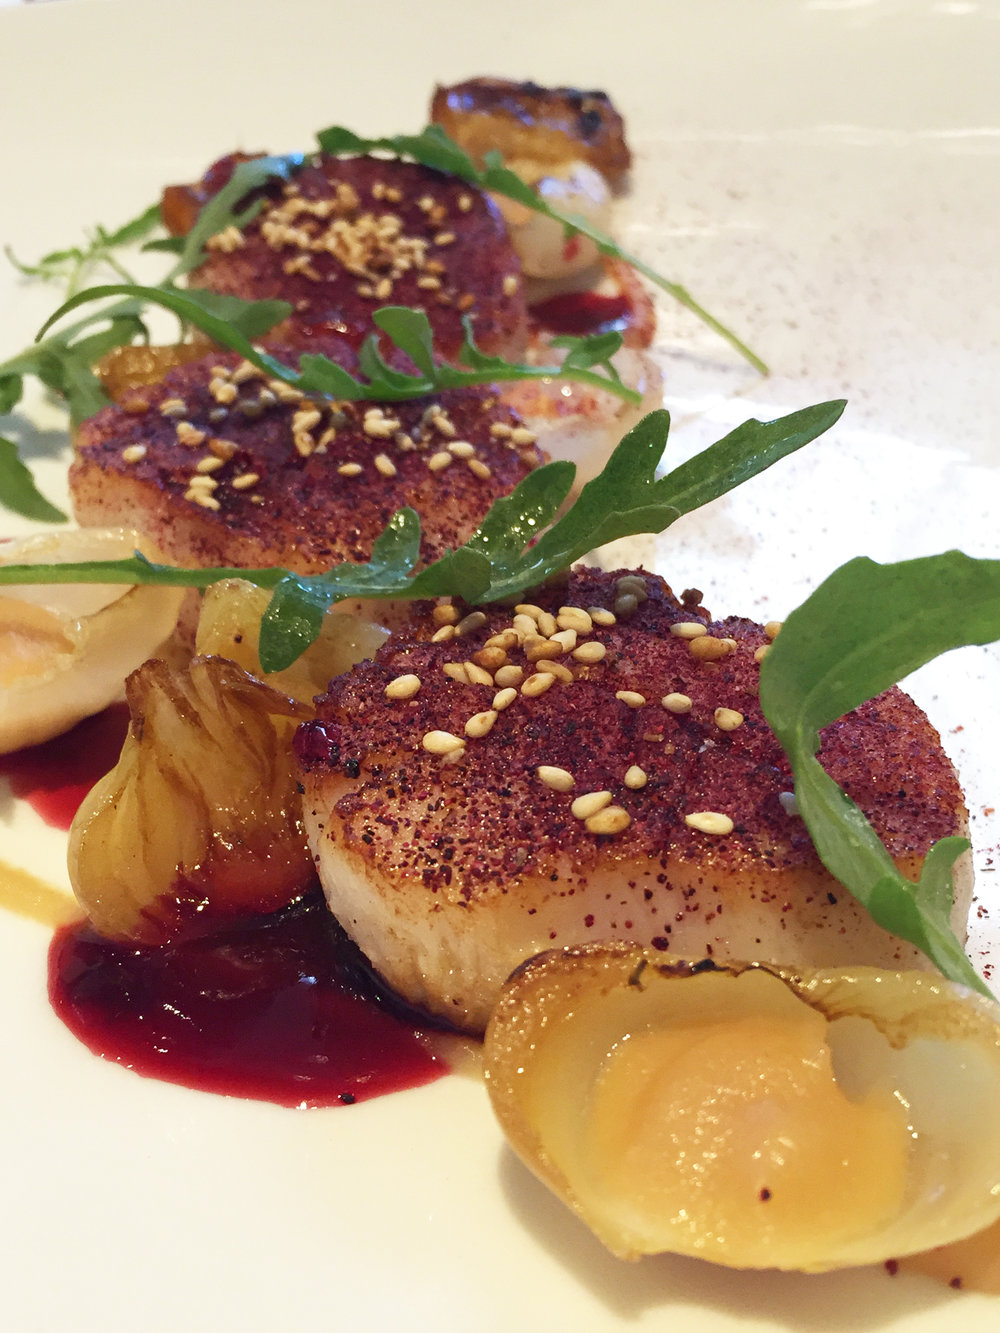 Hokkaido Scallops with cipollini onion, smoked apple, and hibiscus.